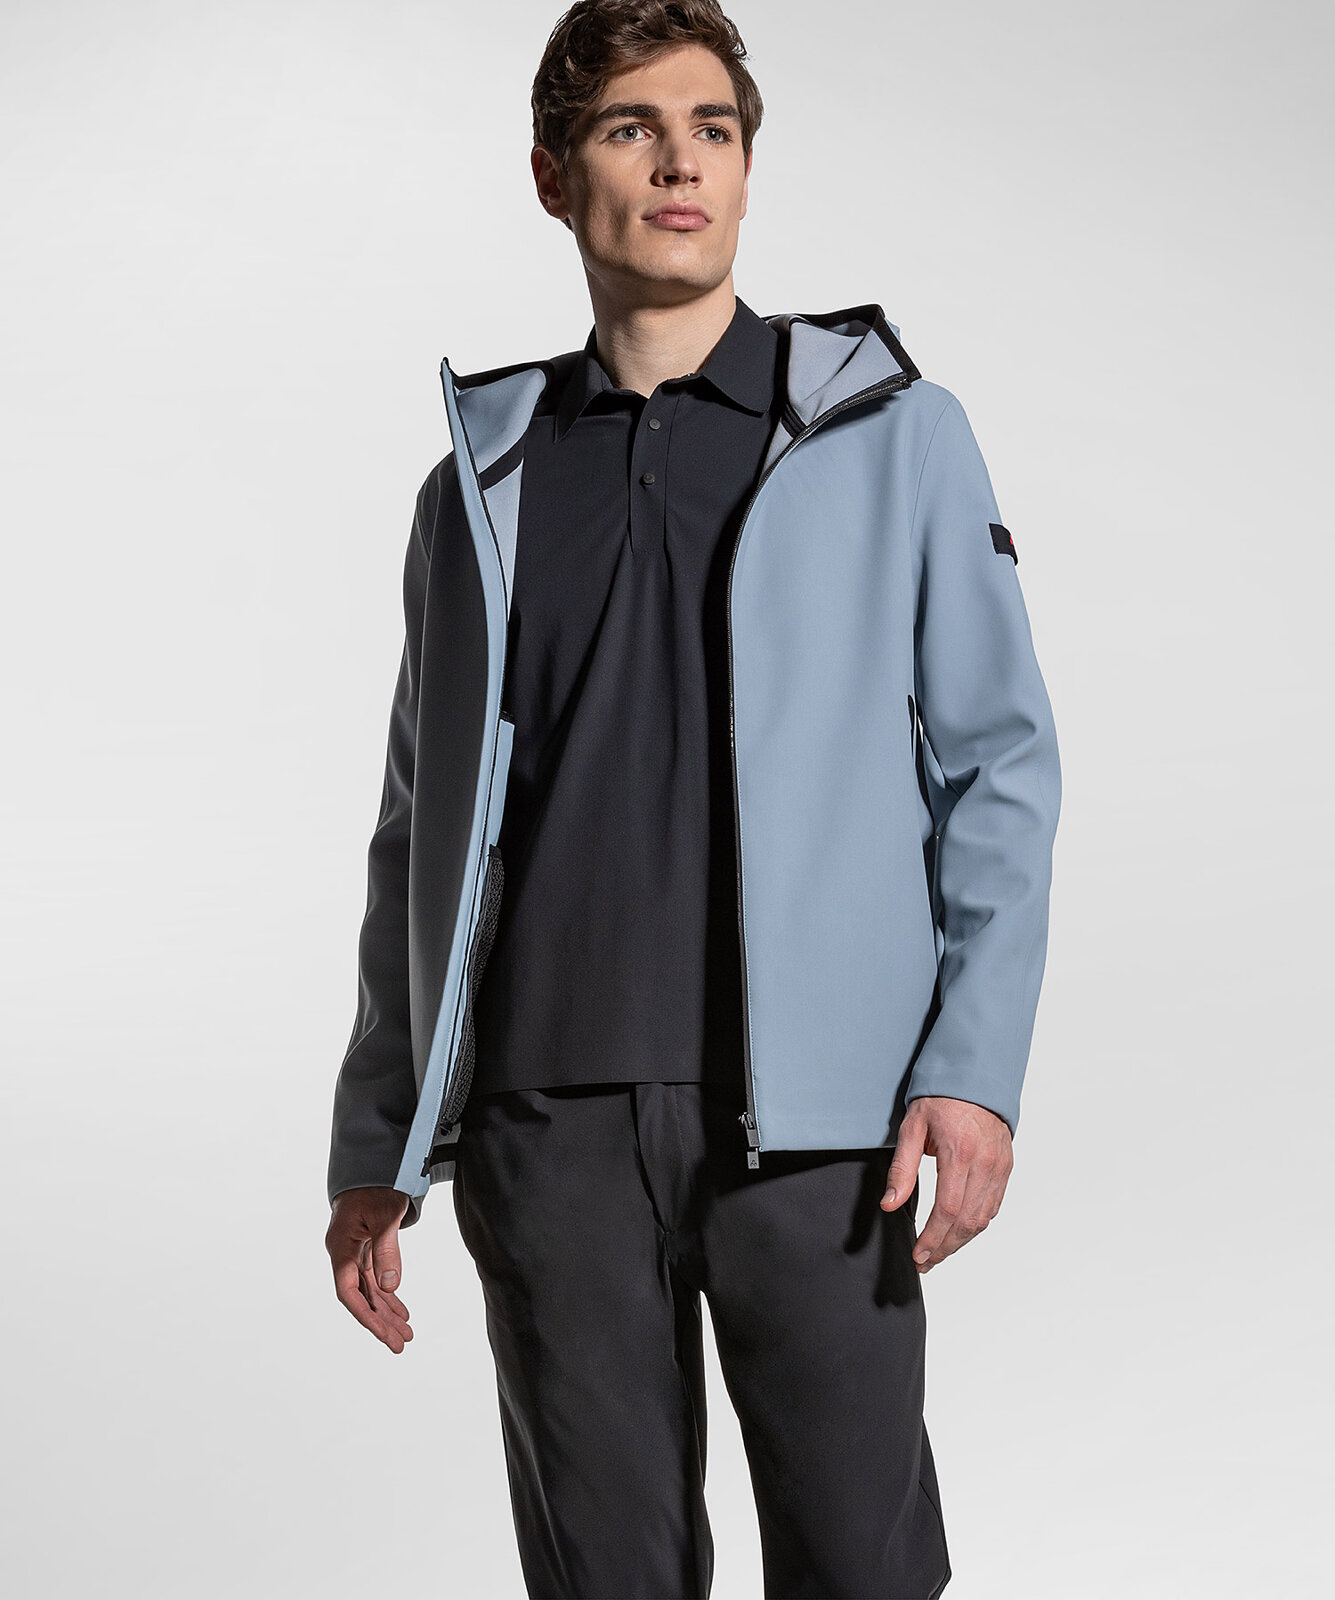 Smooth, Technical And Wrinkle Bomber - Peuterey